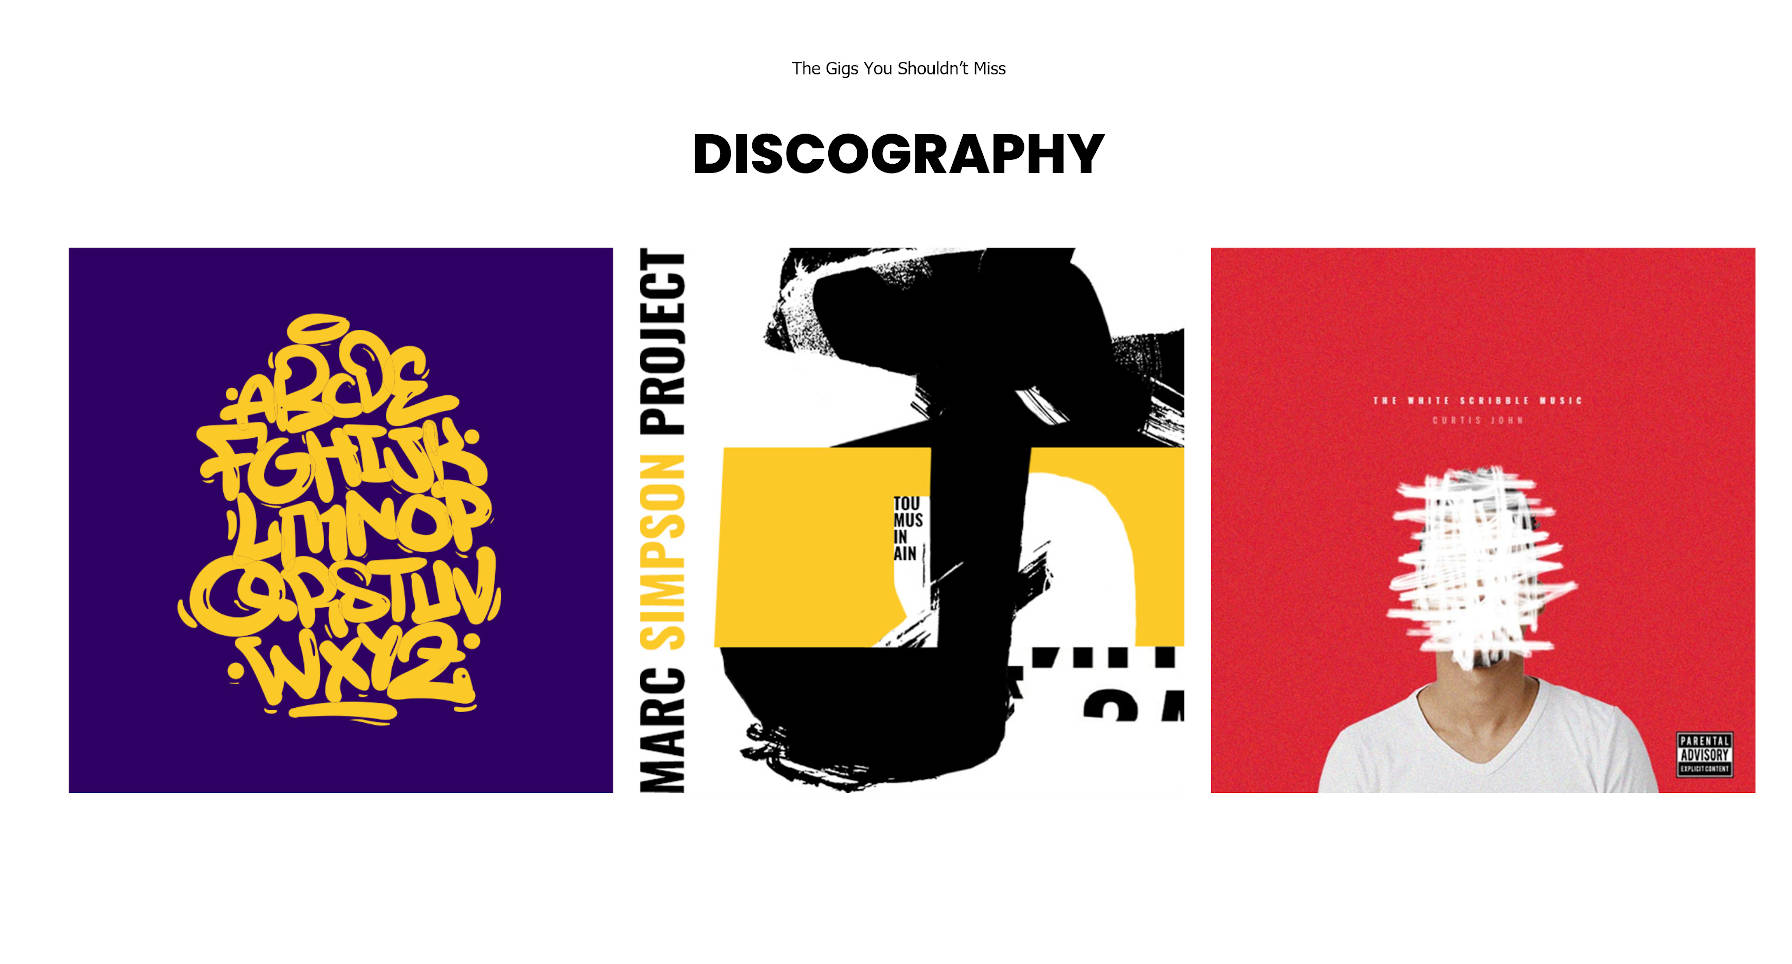 Discography section that lists an artist's albums.